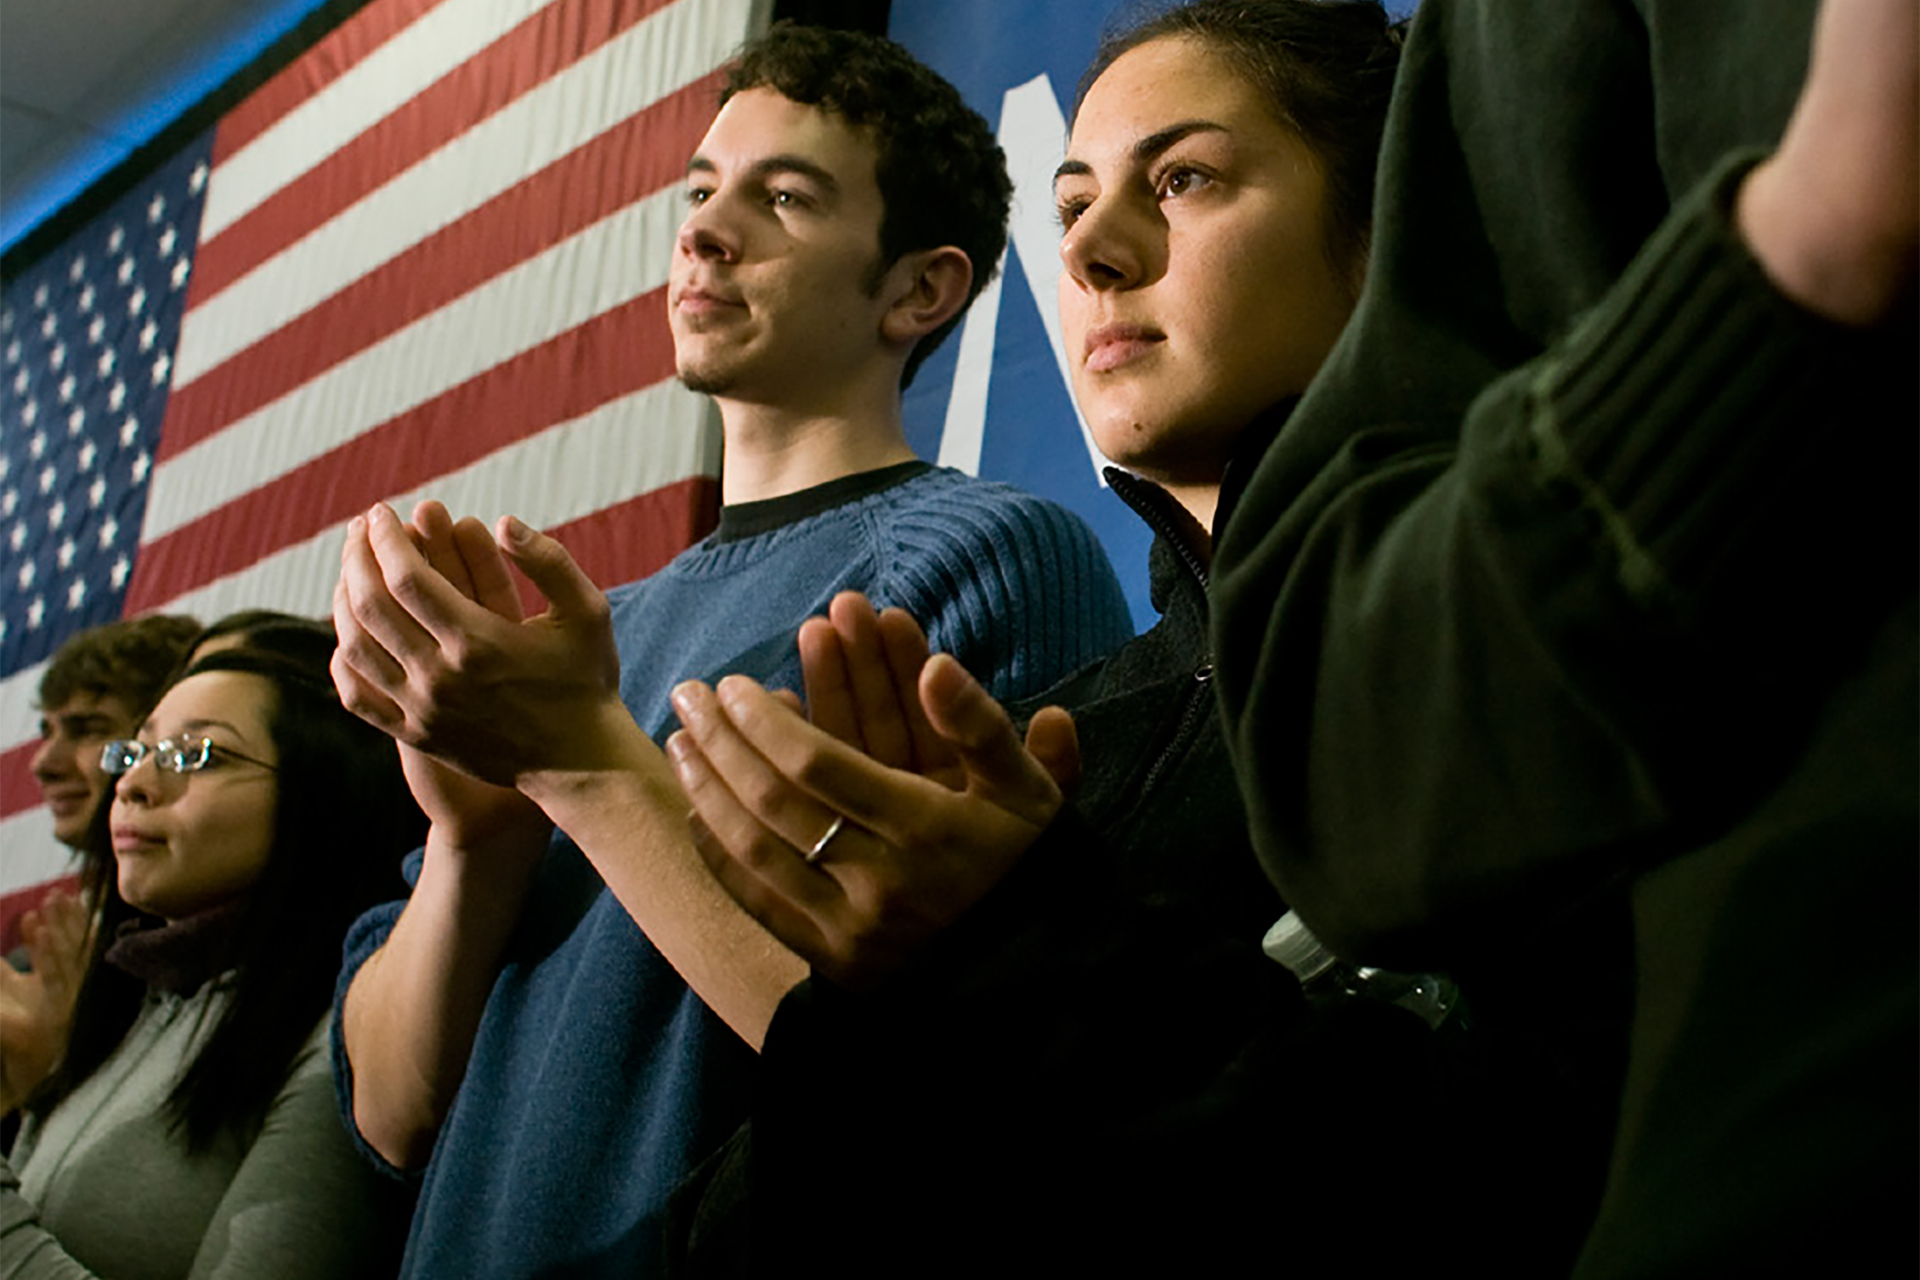 Young people clapping at an event